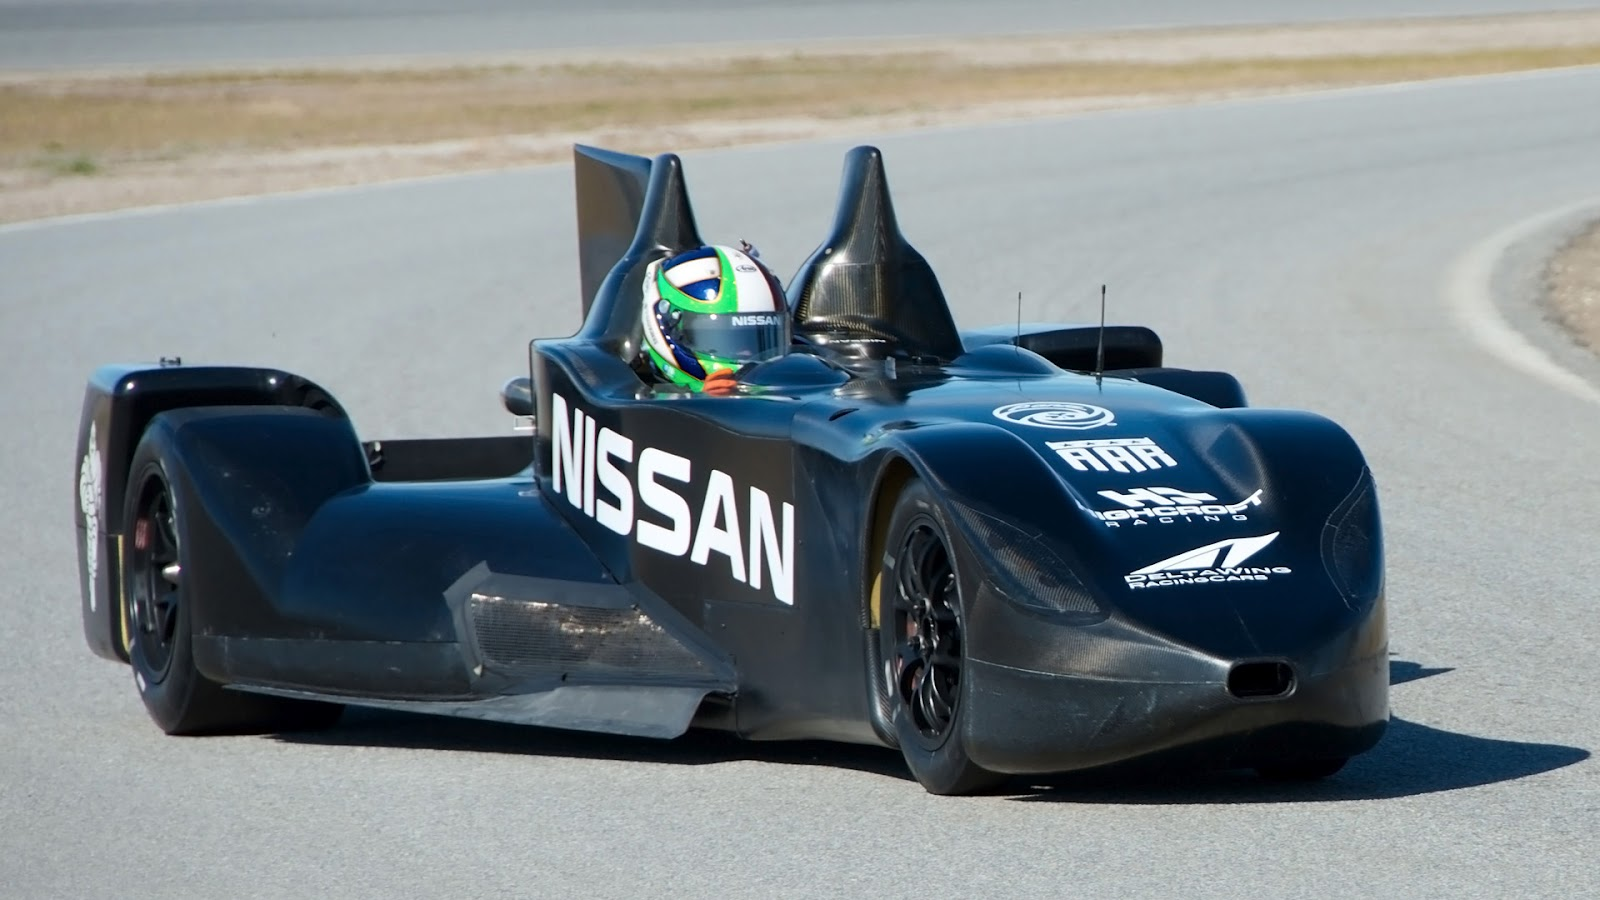 Featured Image of 2012 Nissan Delta Wing At 24 Hours LeMans